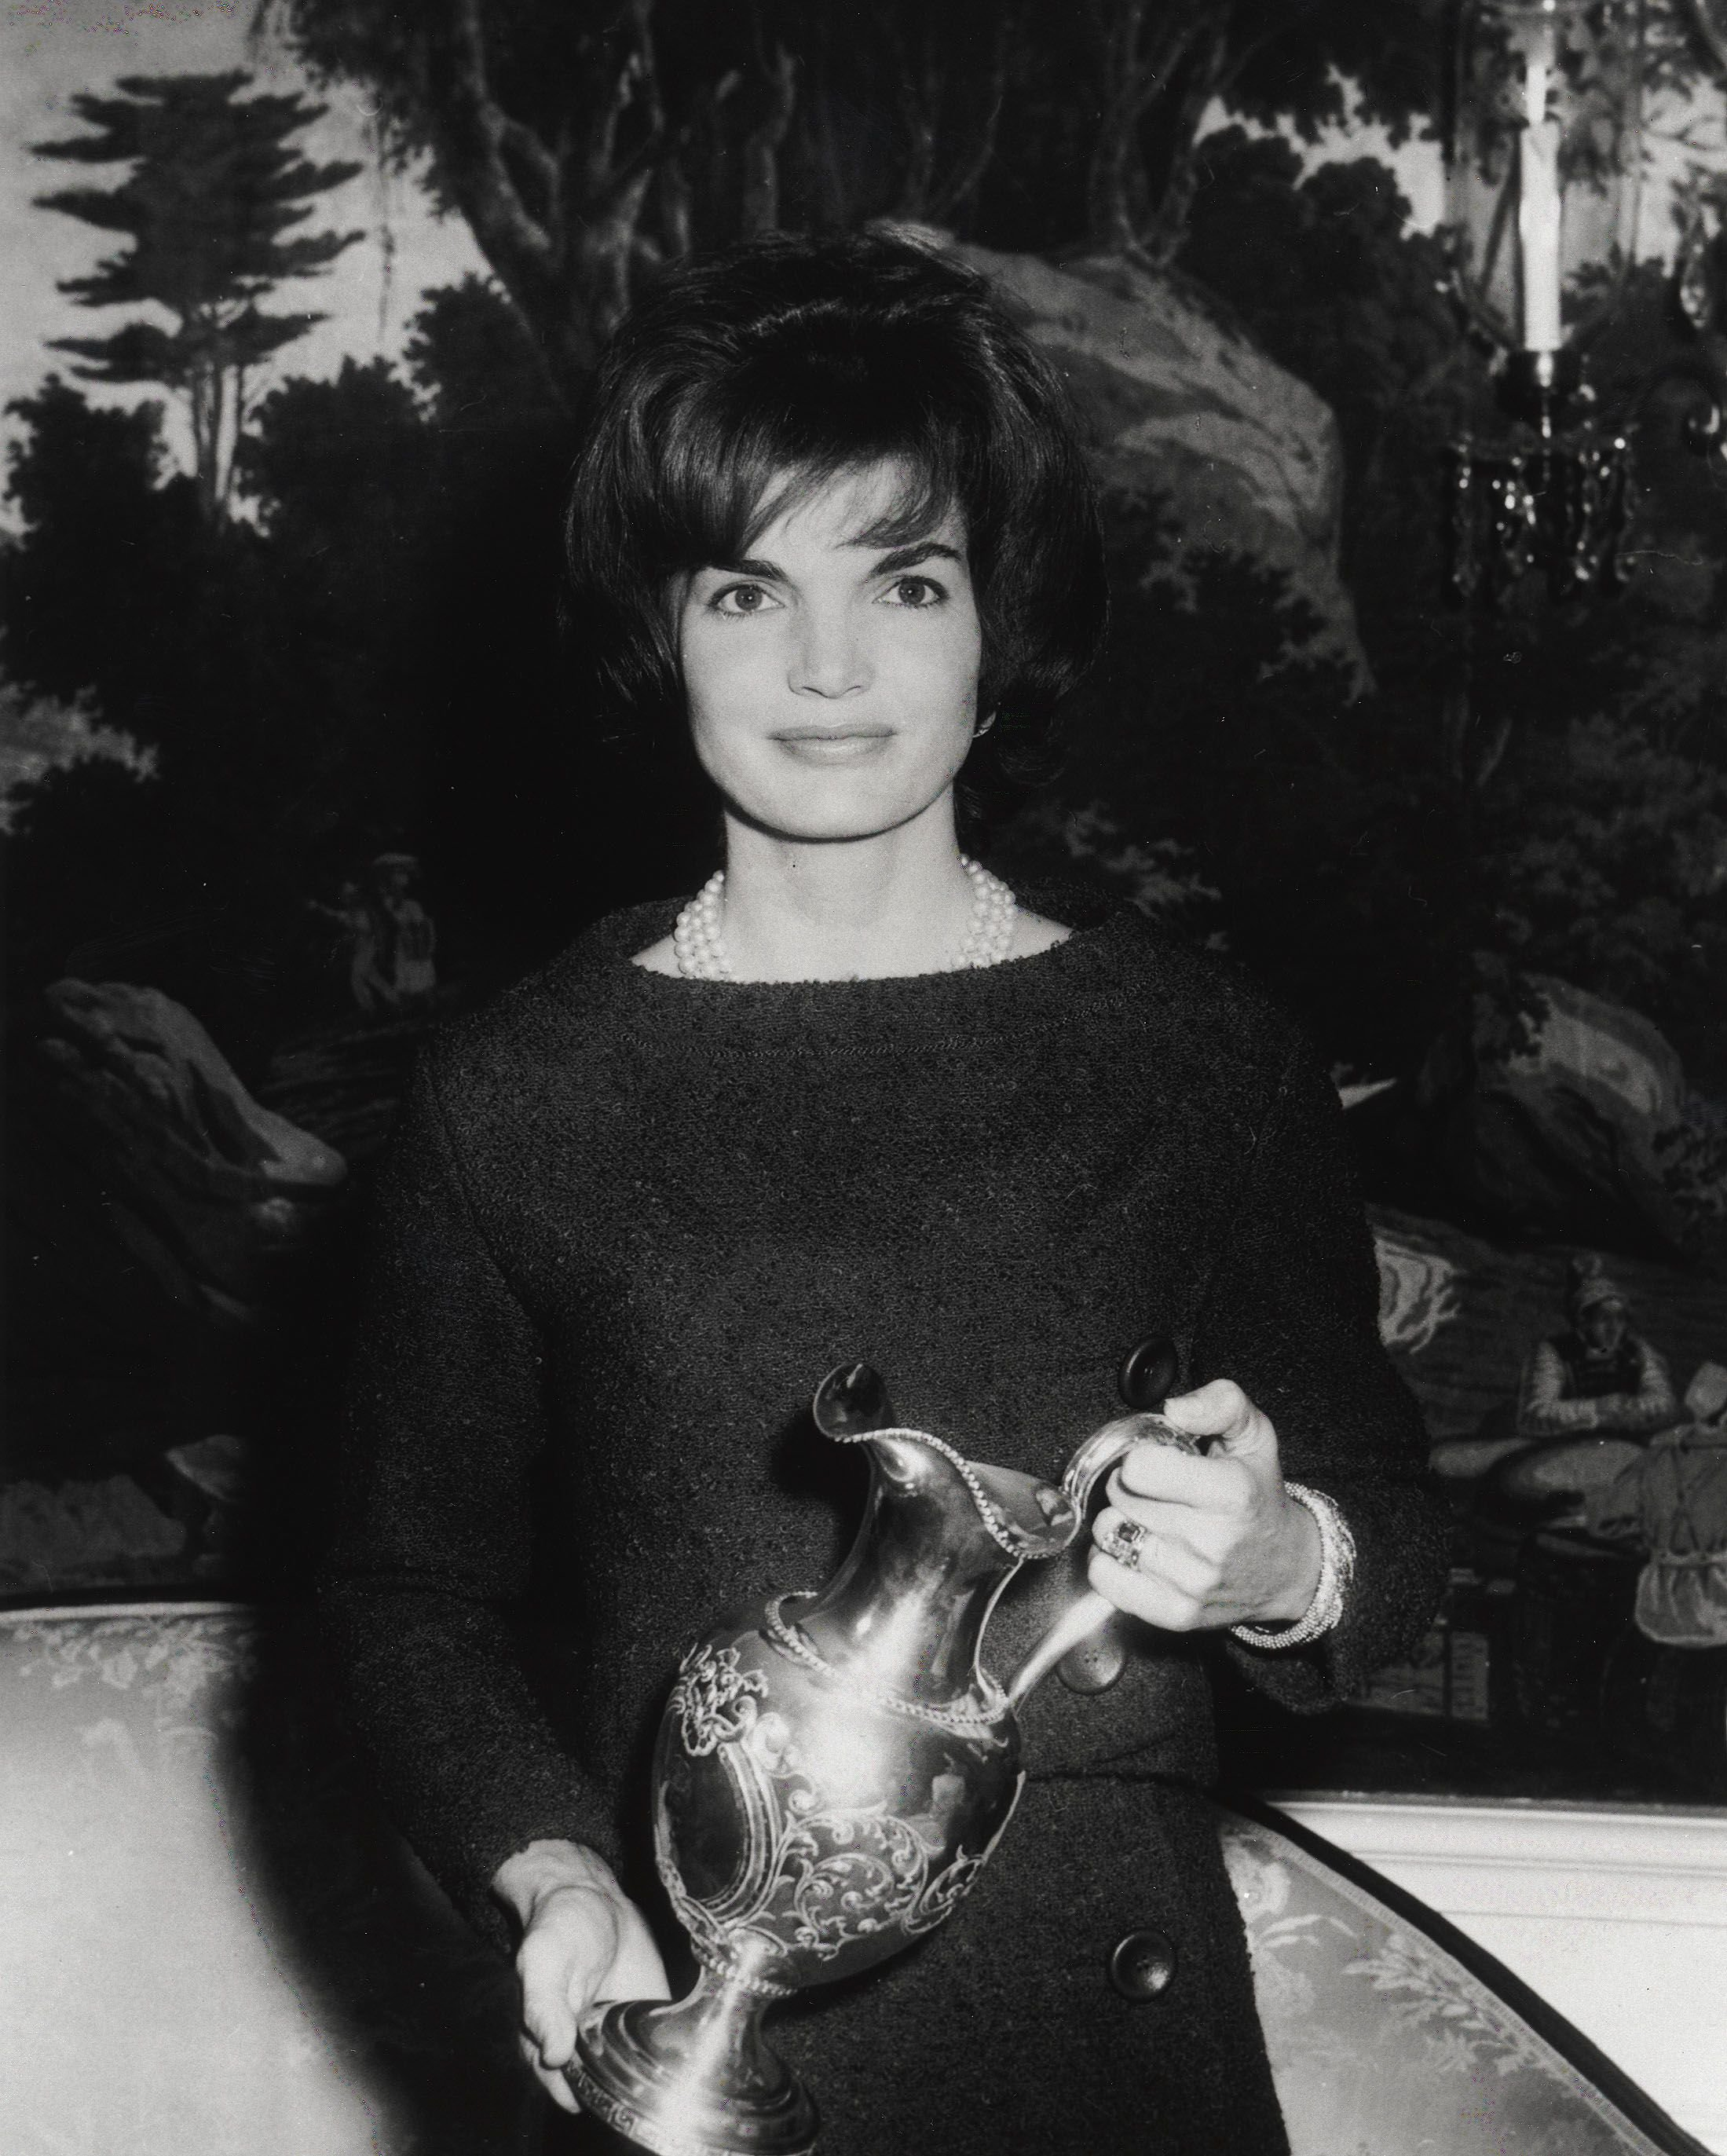 First Lady Jacqueline Kennedy poses for a photograph while holding a gift on December 12, 1961, in Washington D.C. | Photo: Kennedy Library Archives/Newsmakers/Getty Images